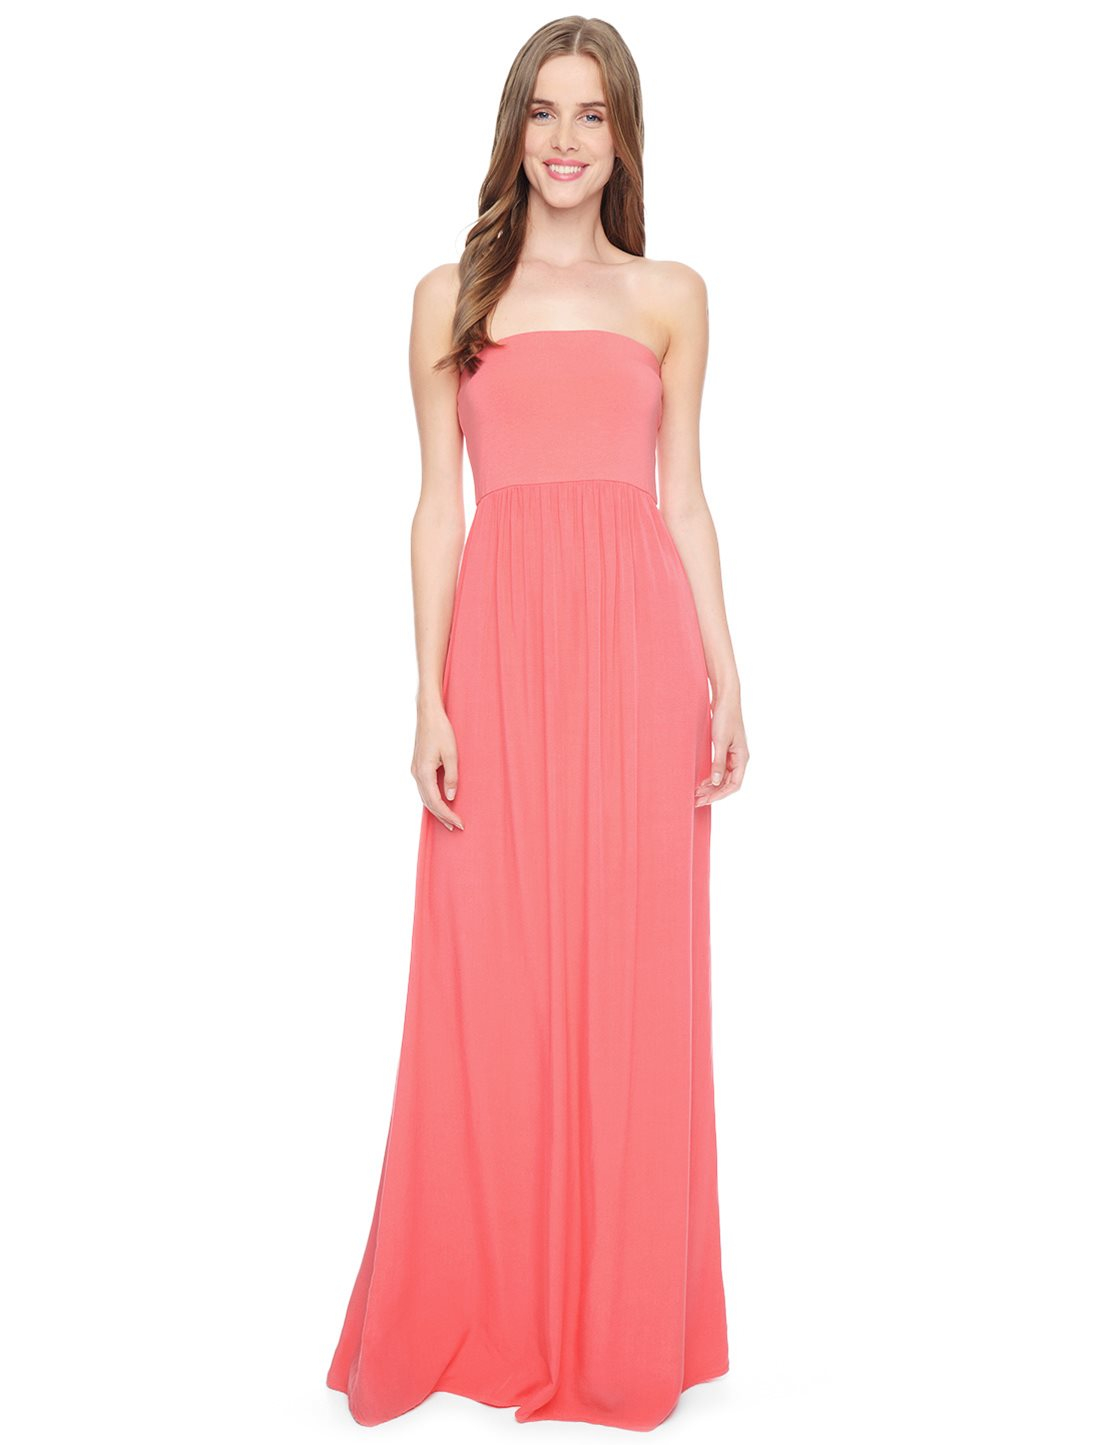 Splendid Strapless Maxi Dress in Pink (Coral Pink) | Lyst